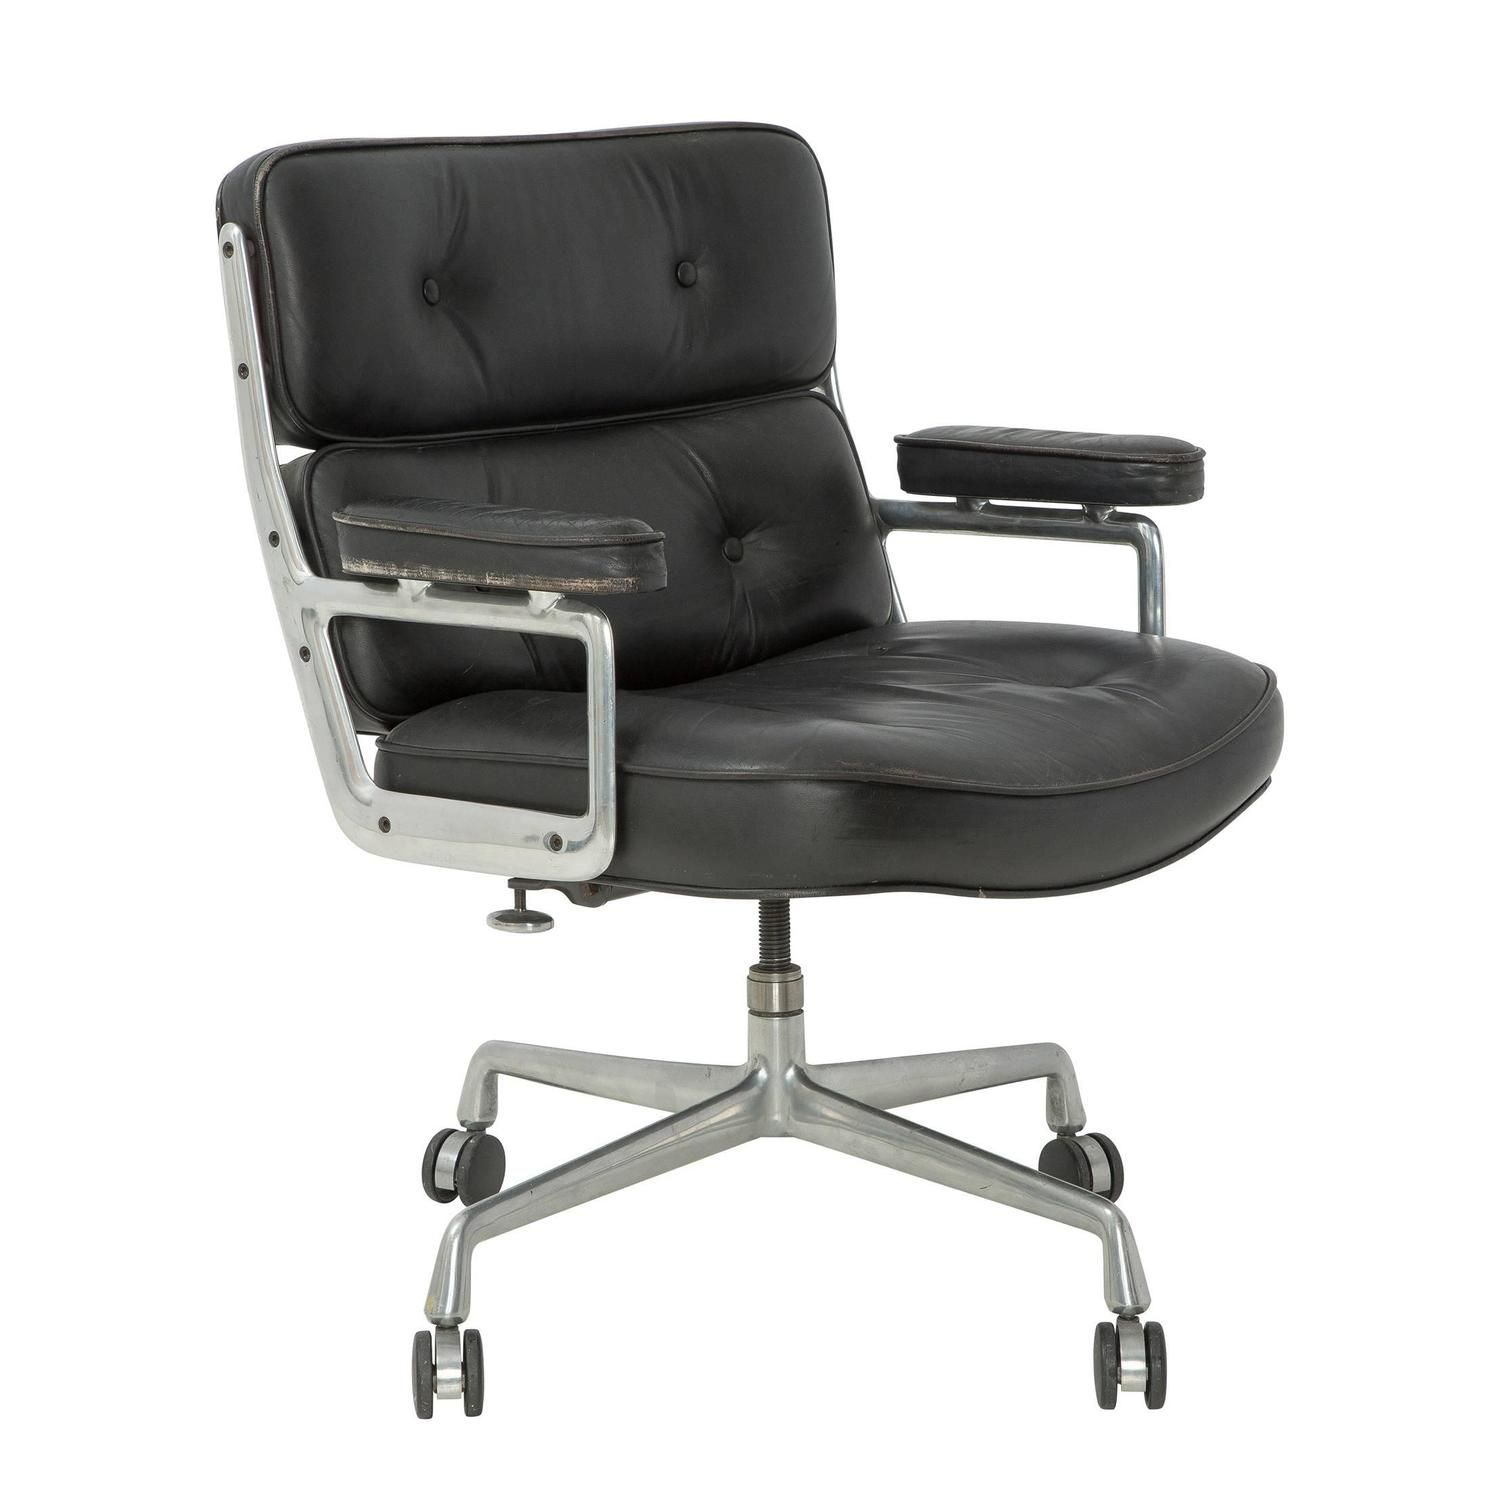 office chairs herman miller. Eames Time Life Office Desk Chair, Herman Miller Chairs